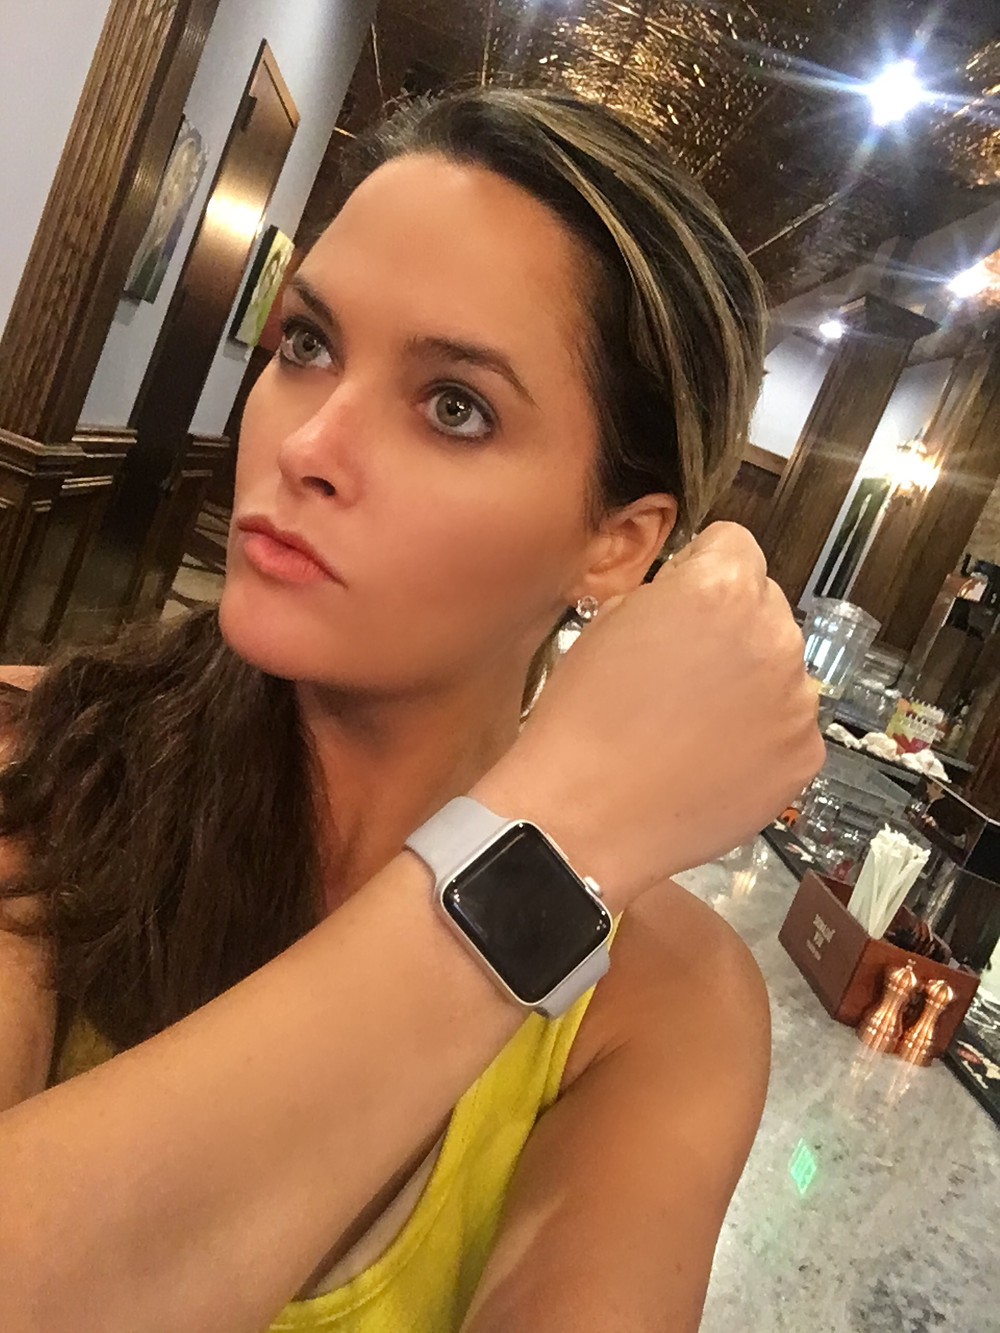 apple watch, model, whitney, apple, whitney thompson, hate watch, watch, beauty, blog, america's next top model, winner